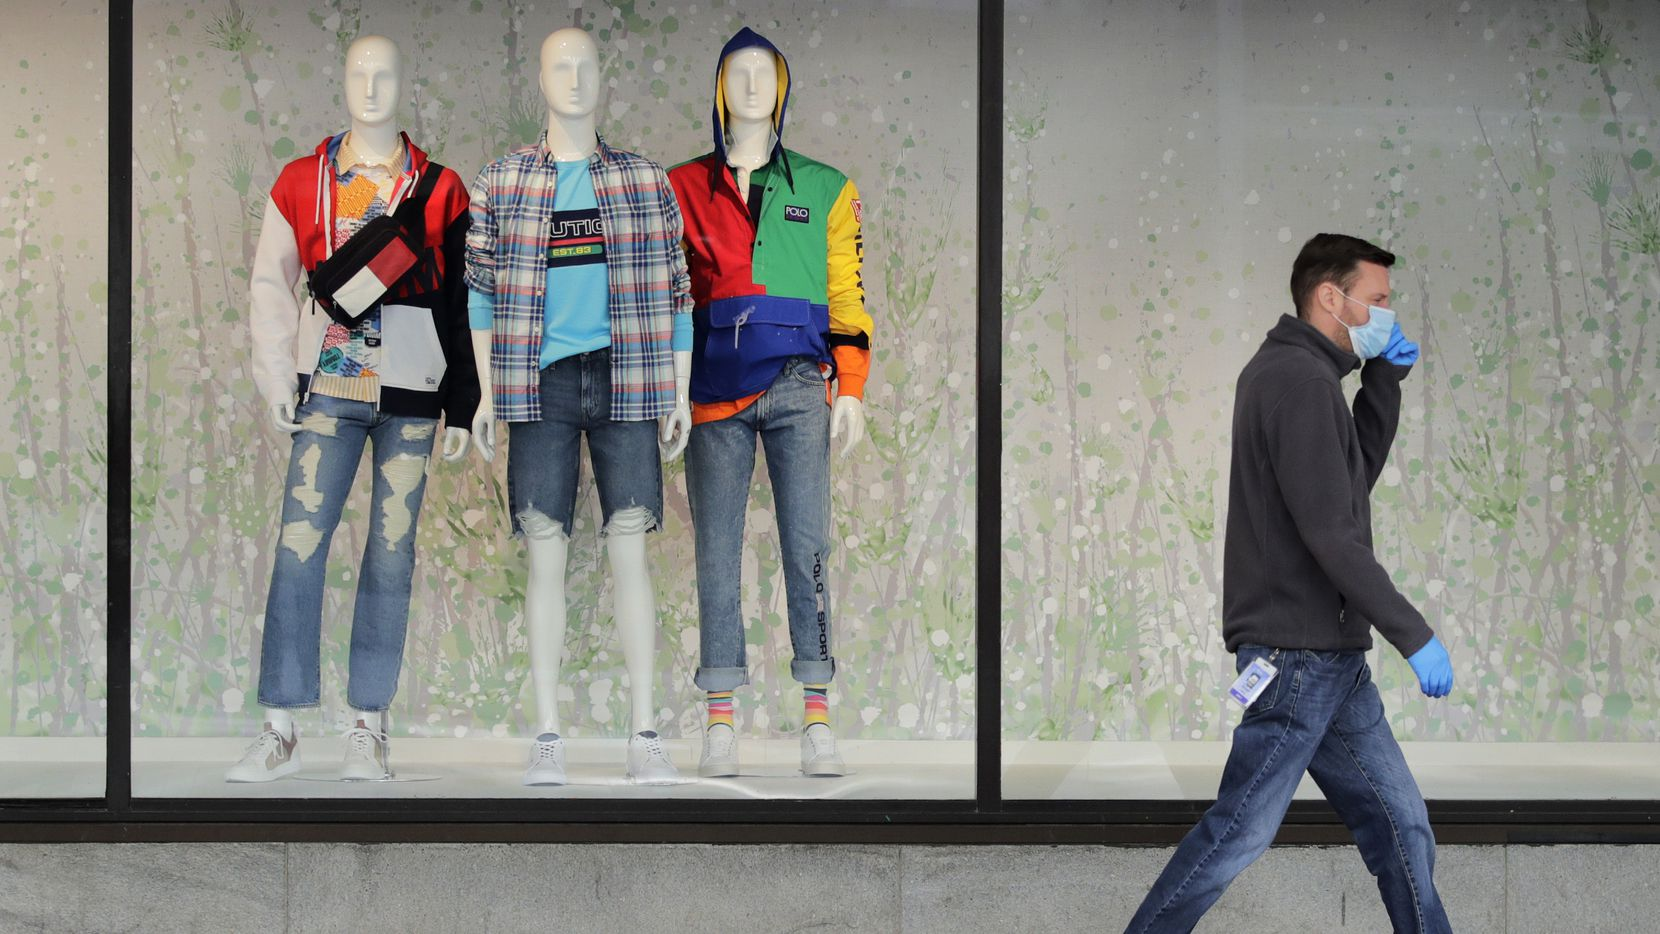 A man walks past mannequins in the windows of the Macy's store in Boston on April 15.